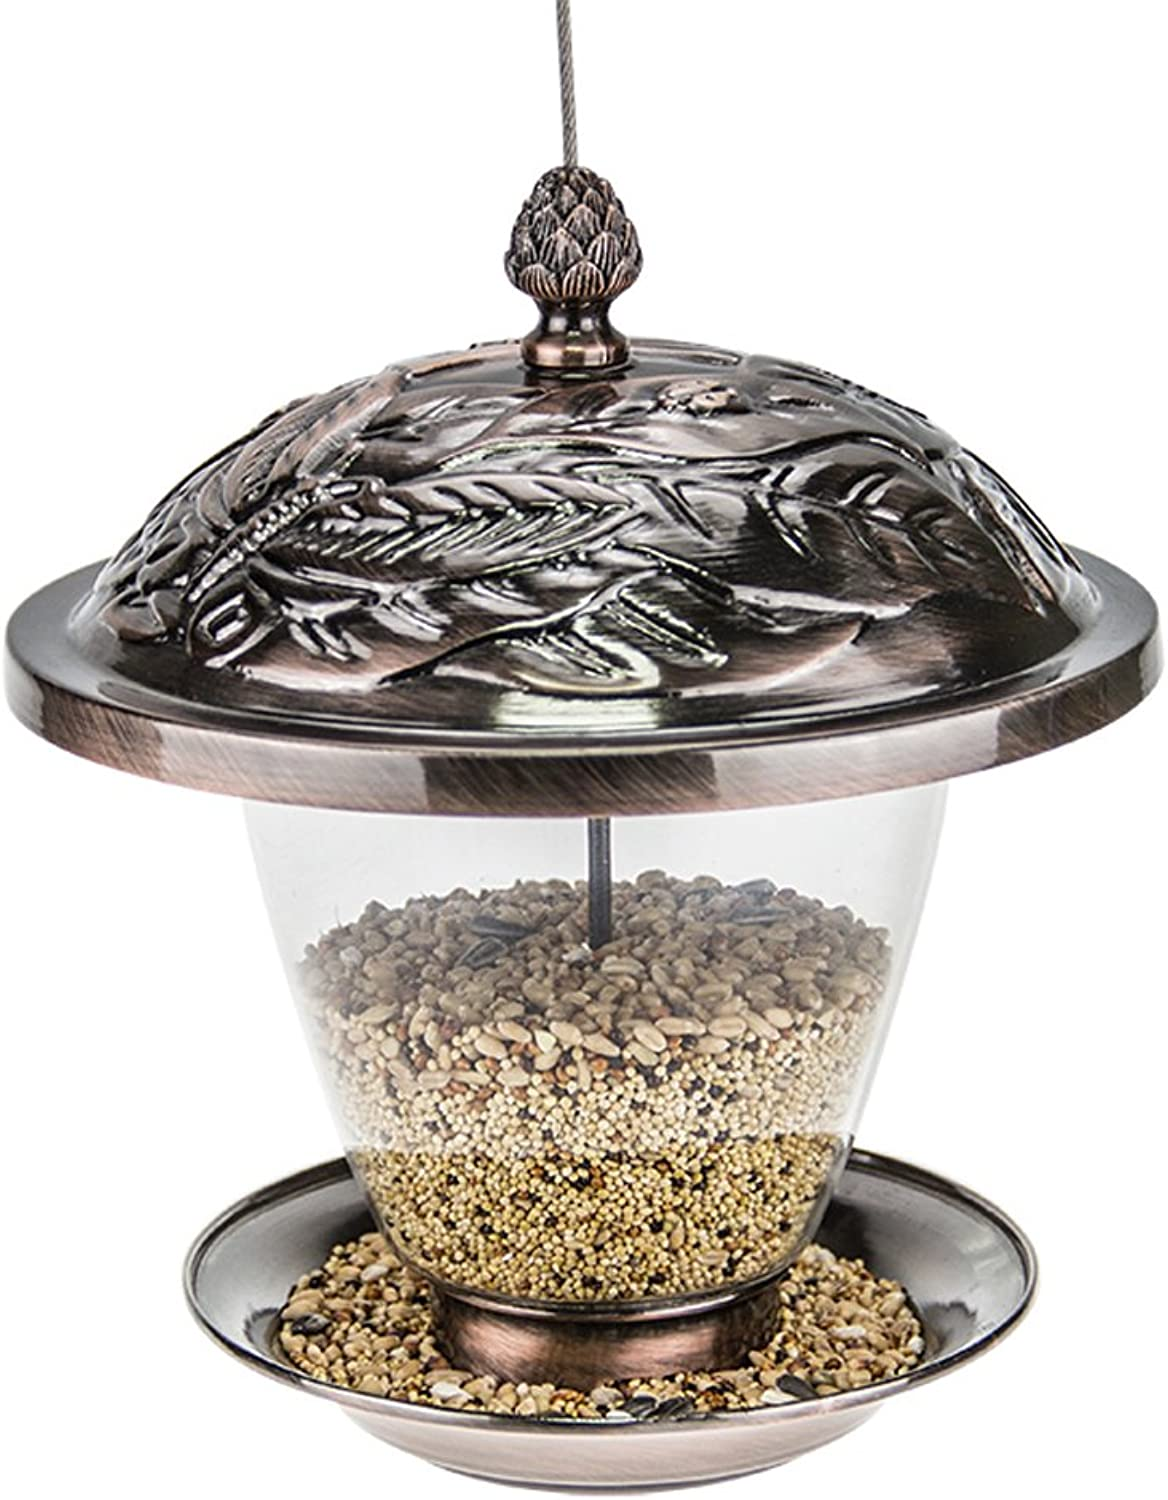 Copper Panorama Wild Bird Feeder Gazebo Hanging for Finches Bird Seed and More,Great for Attracting Birds Outdoors,C